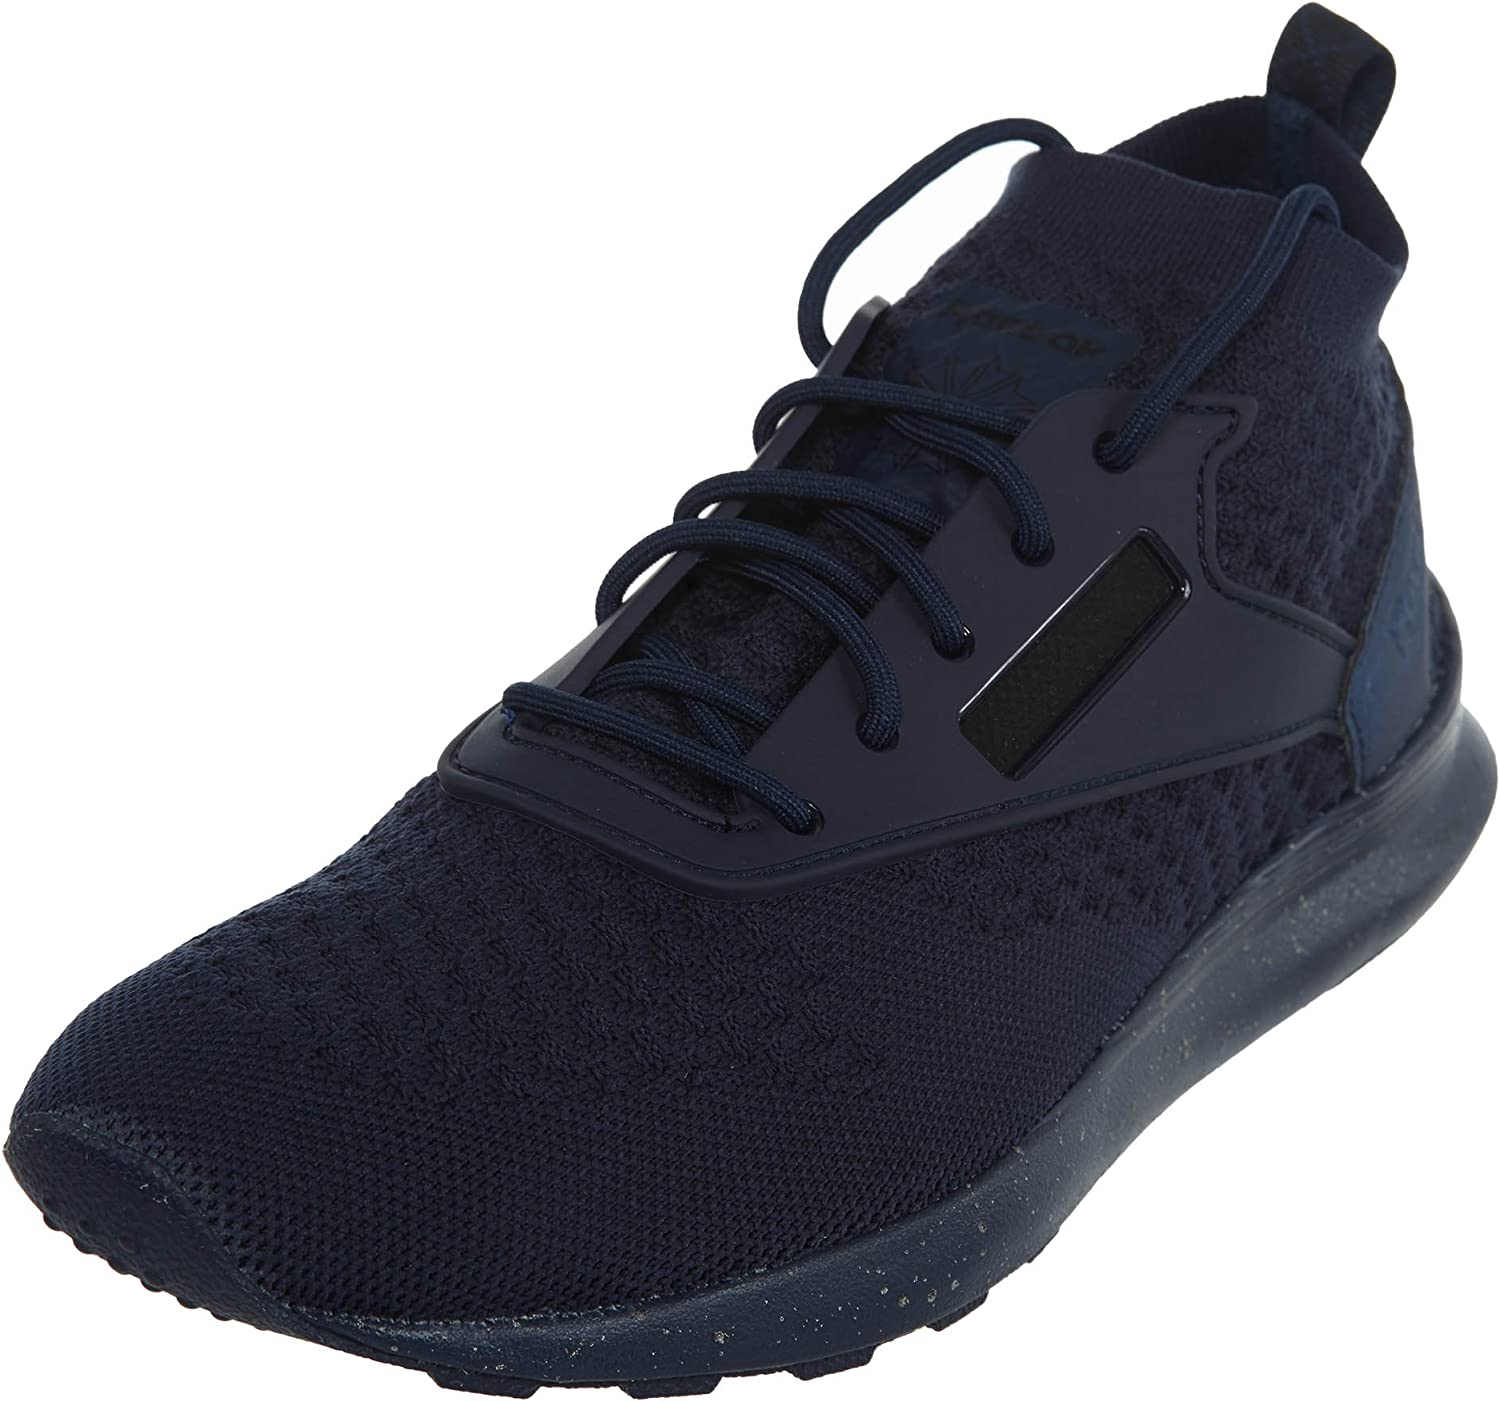 REEBOK Zoku Runner Ultraknit is shoes Mens Style   BS9115Collegiate Navy Black White Size   10 M US